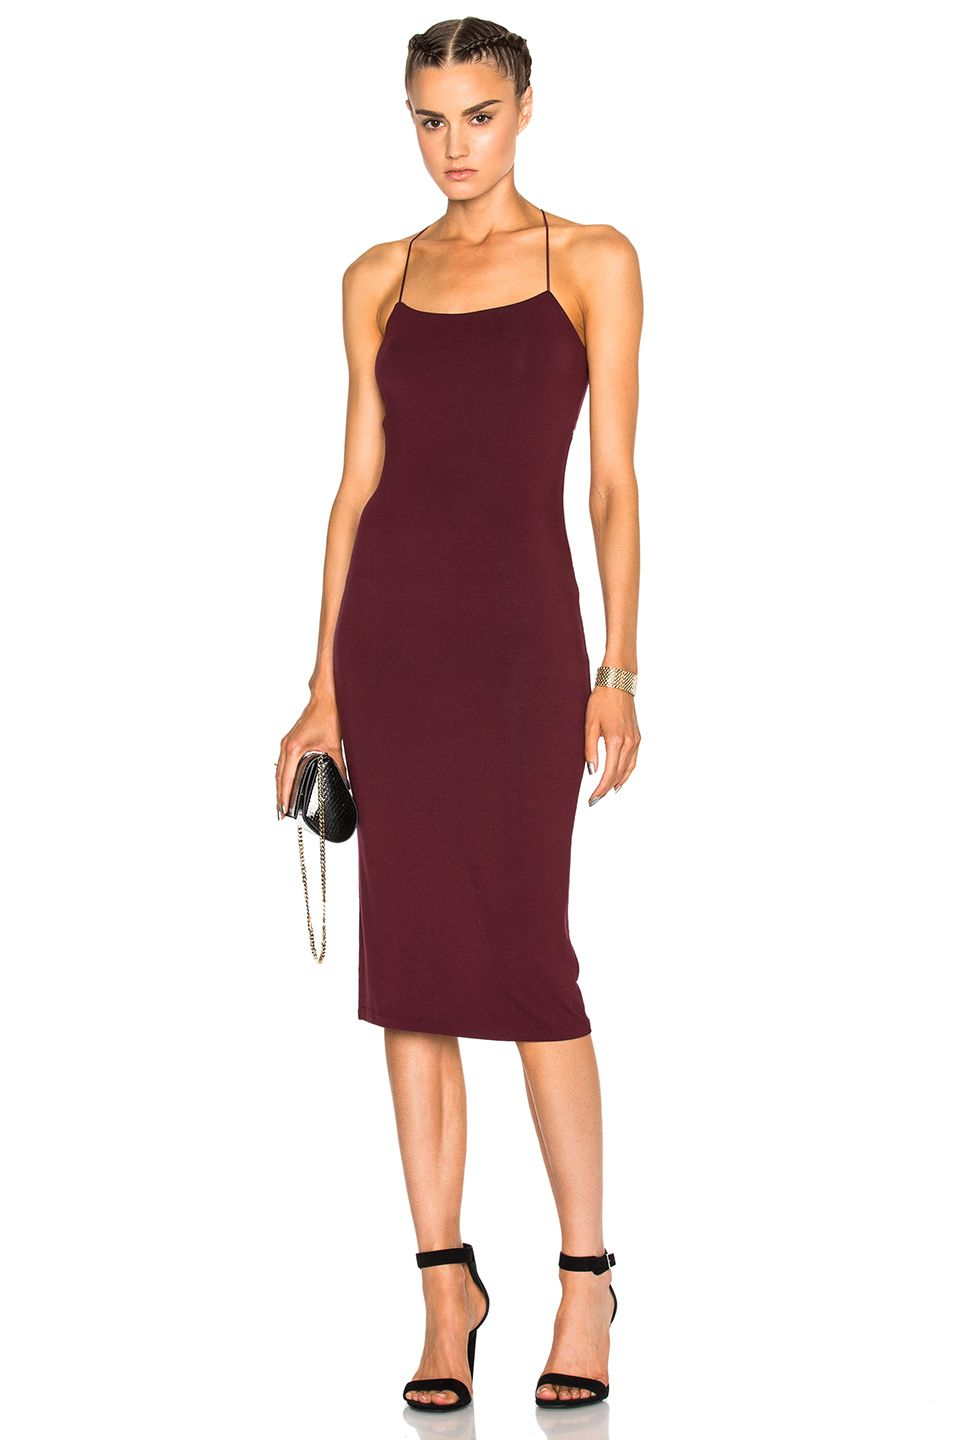 5f376999579 Image 2 of T by Alexander Wang Strappy Tank Dress in Wine   Dress ...